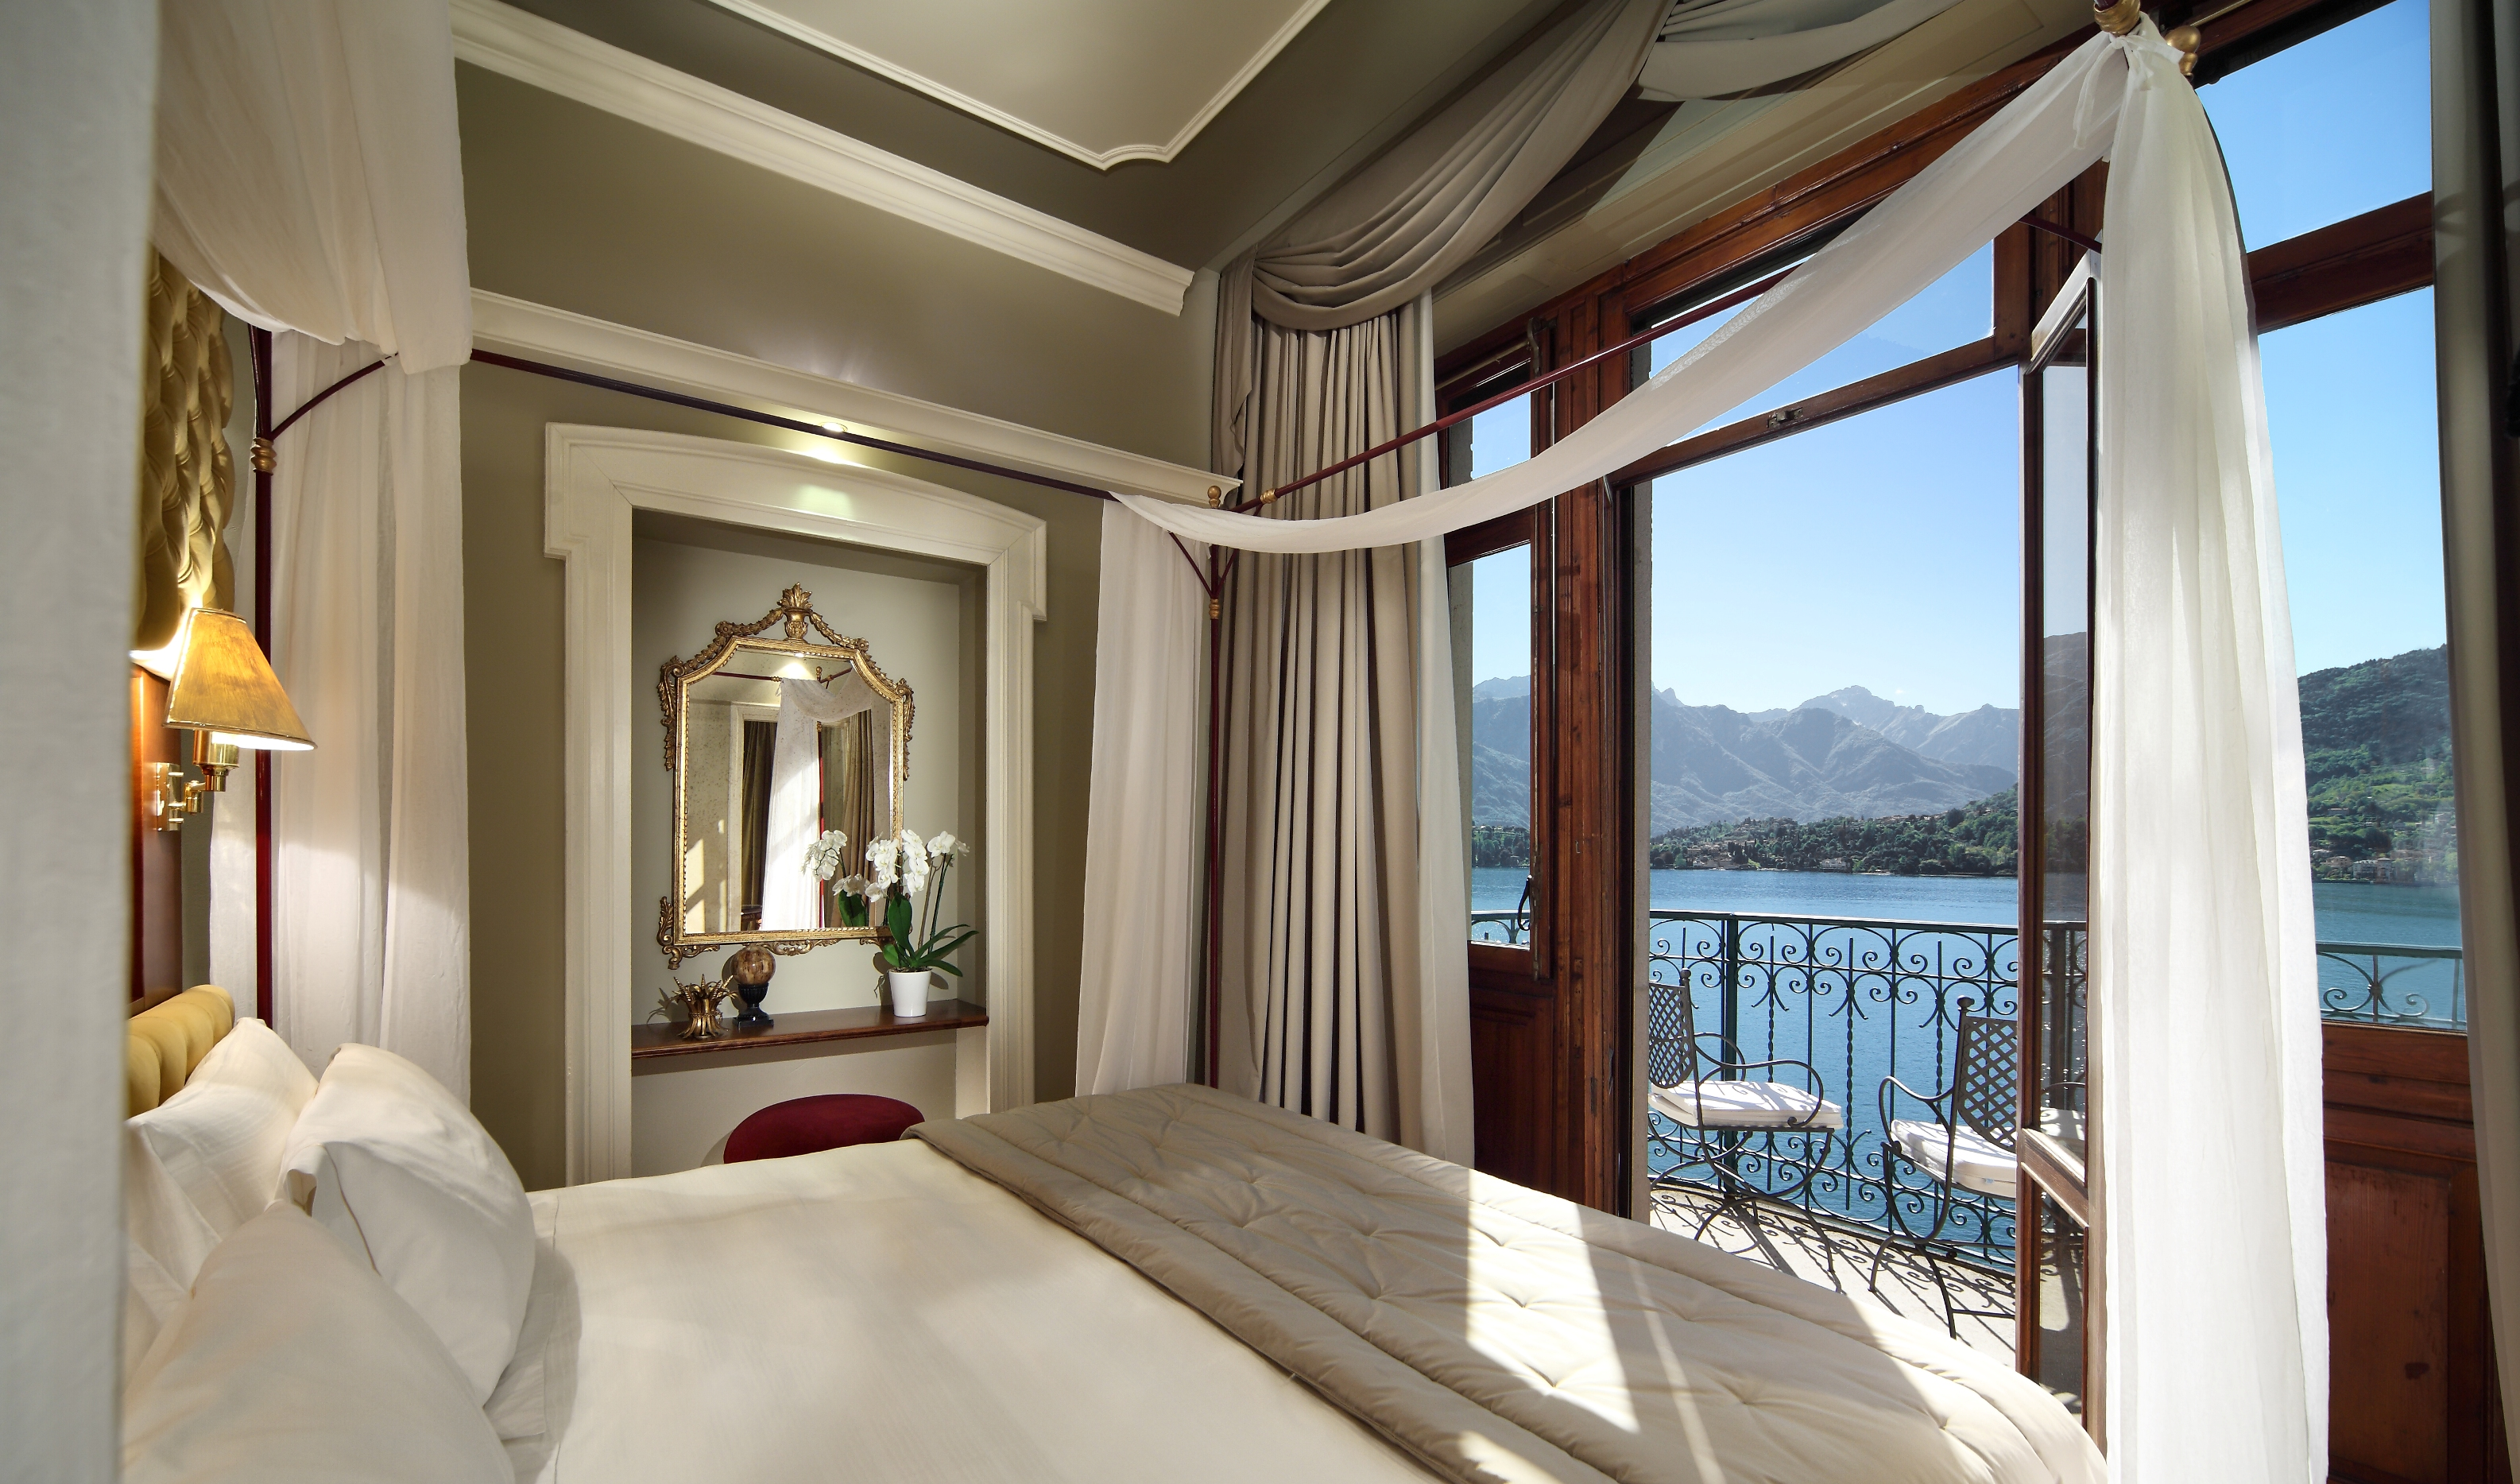 Their Luxury Honeymoon Package Rates In Suite Maria For 3 Nights Start From 3300 EUR VAT Per Room Double Occupancy And Includes The Following